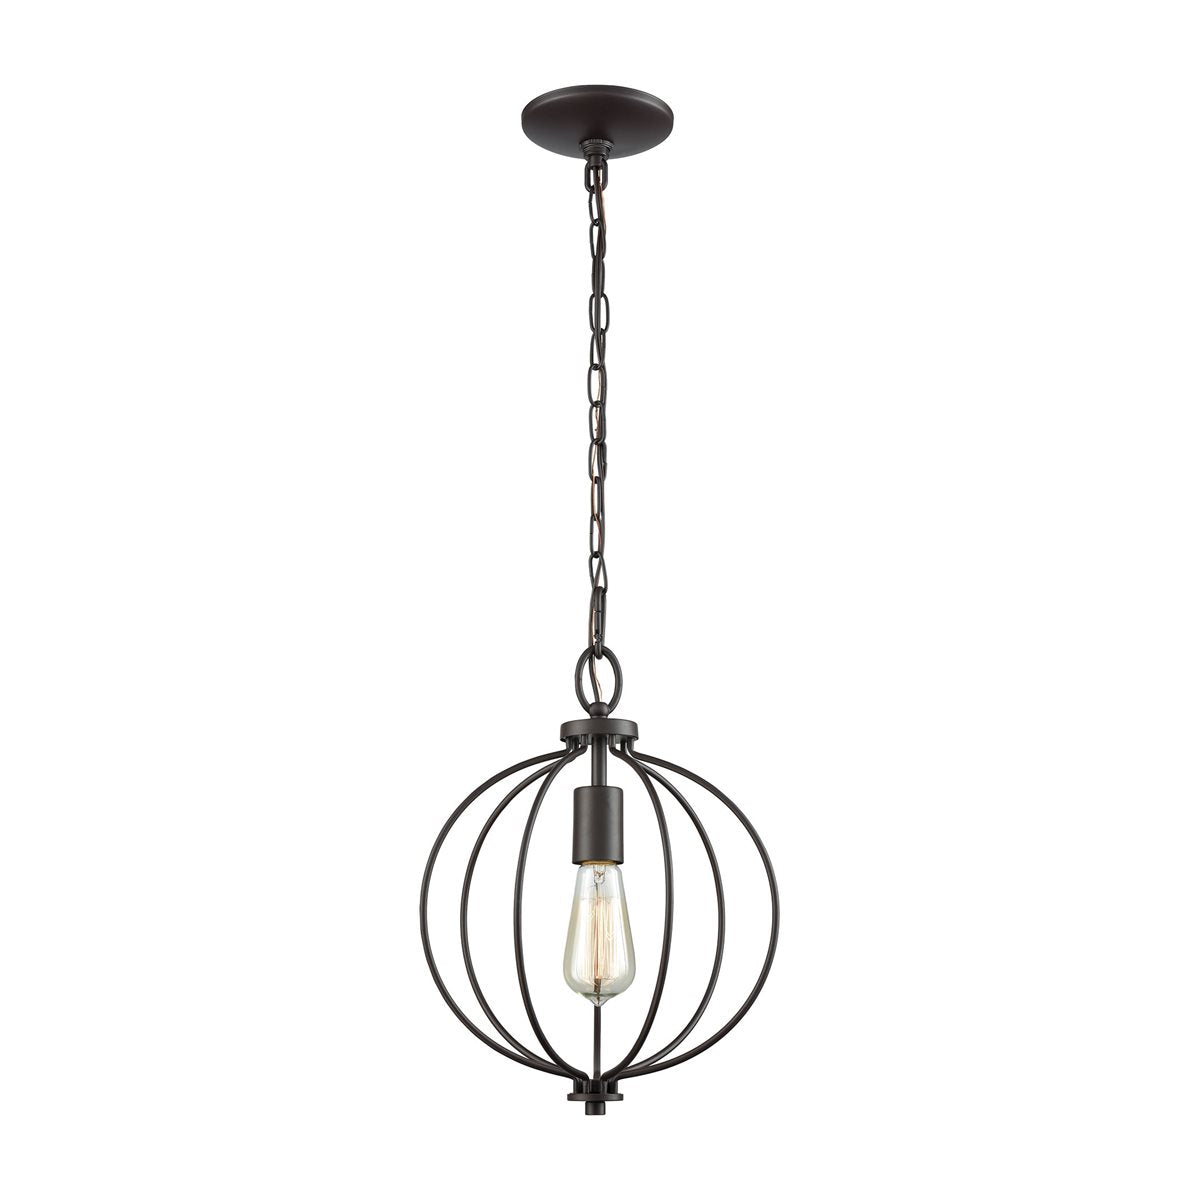 Portia 1-Light Round Pendant